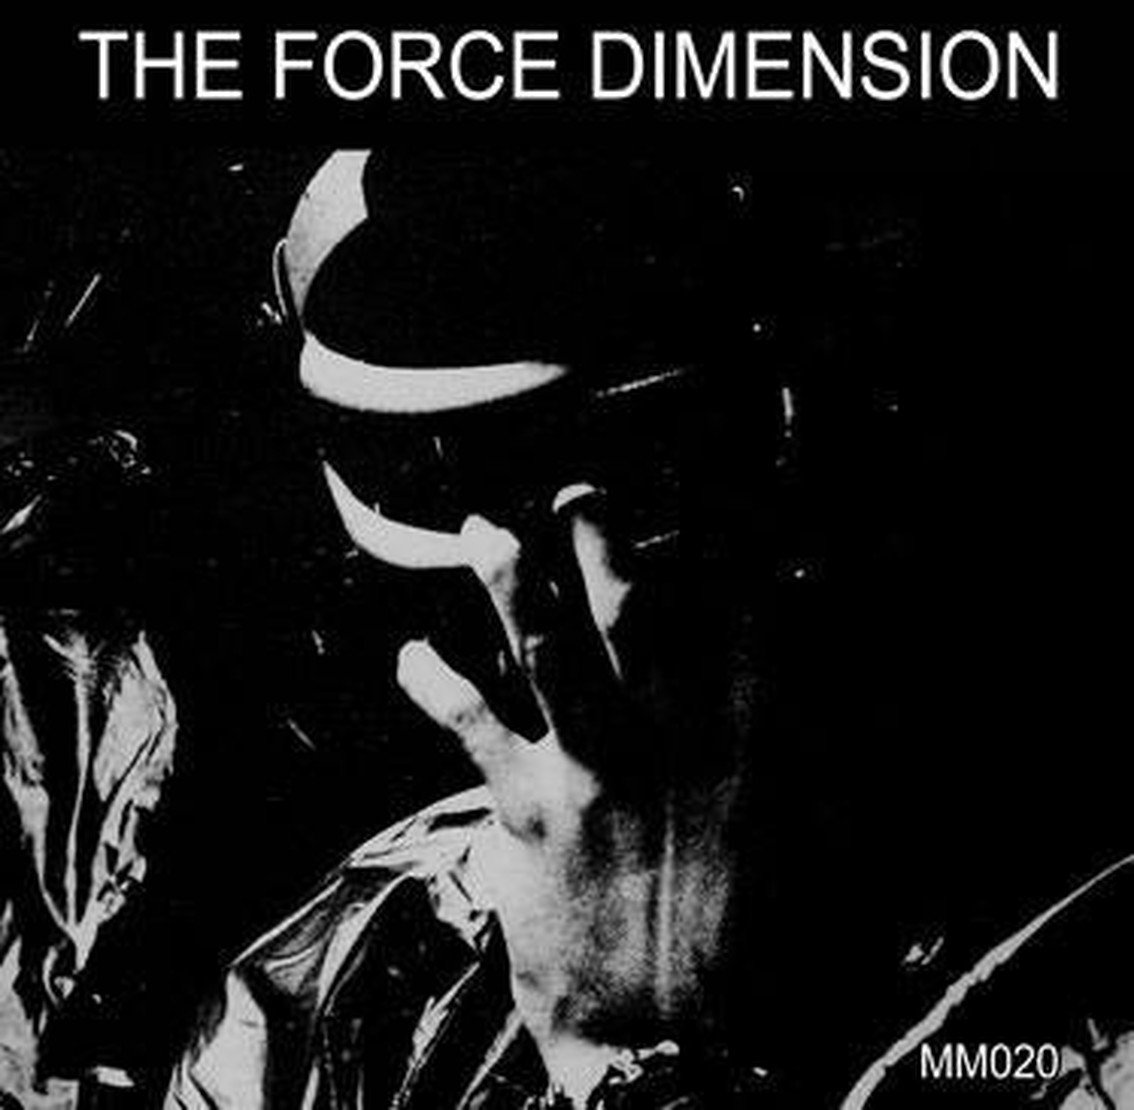 The Force Dimension debut back available, this time on vinyl (with CD included) - only 500 copies available